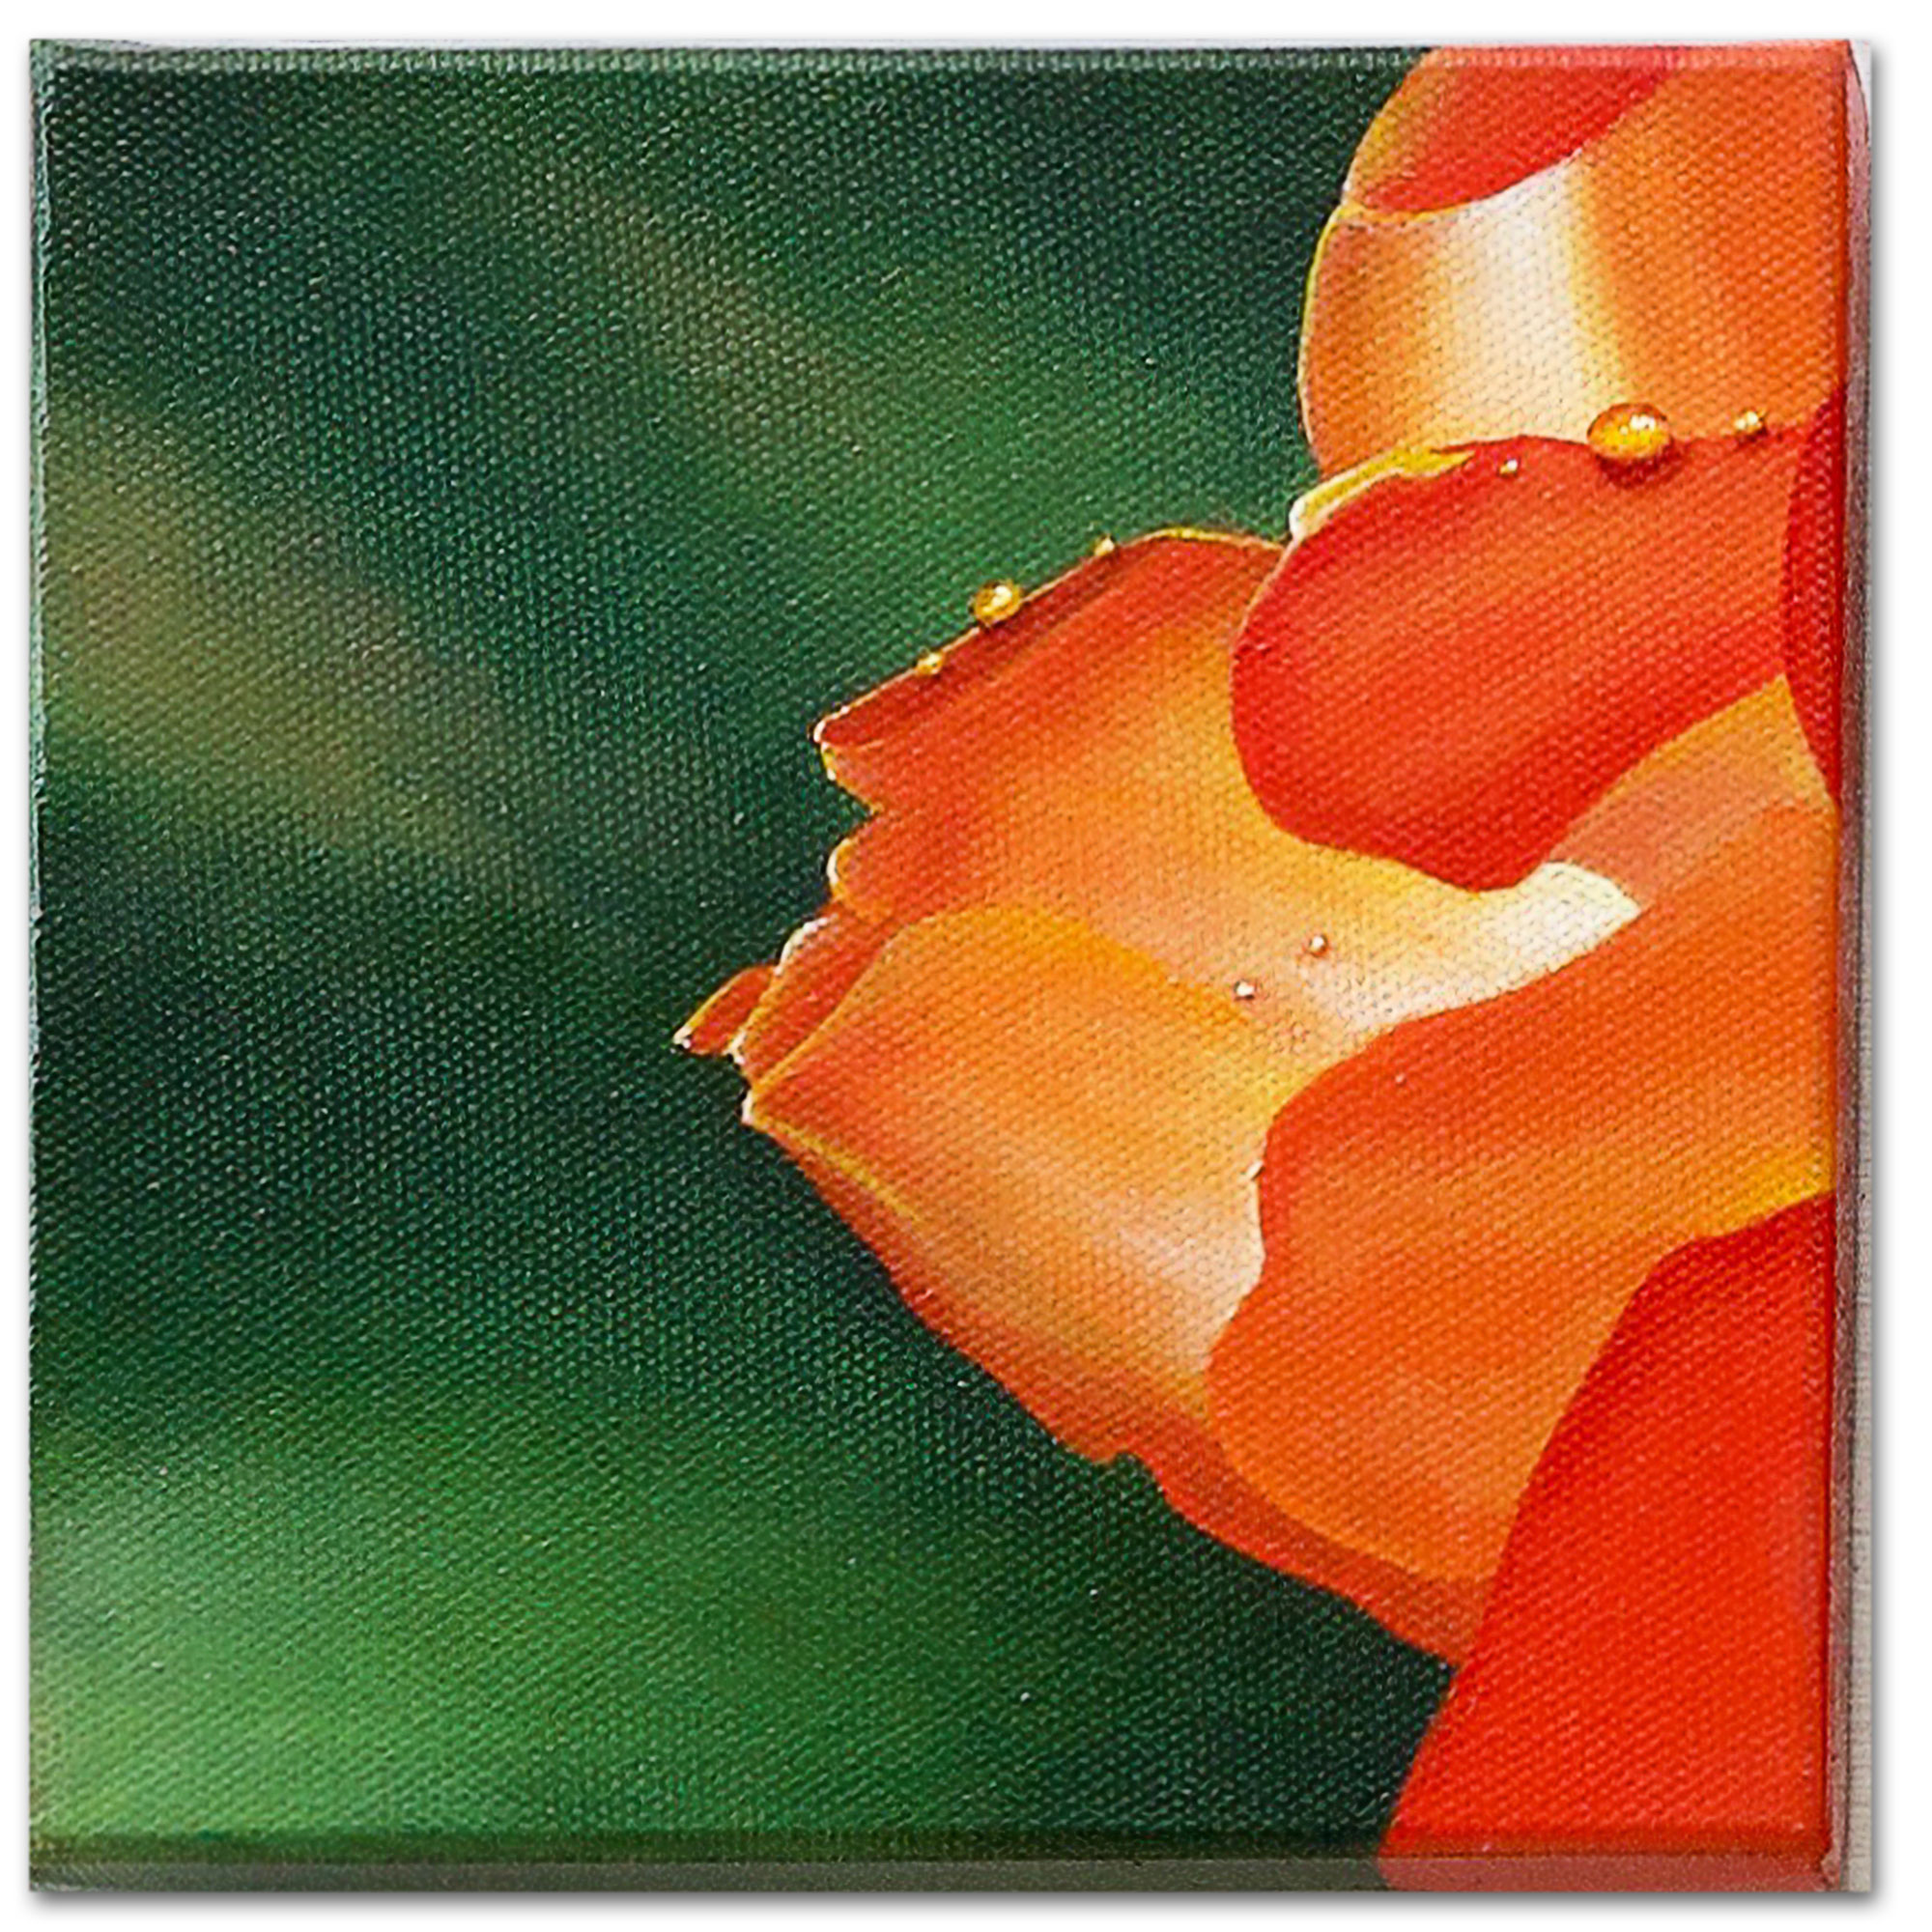 Standing proud rose oil painting - The pride of a master gardener shelters the ladybird